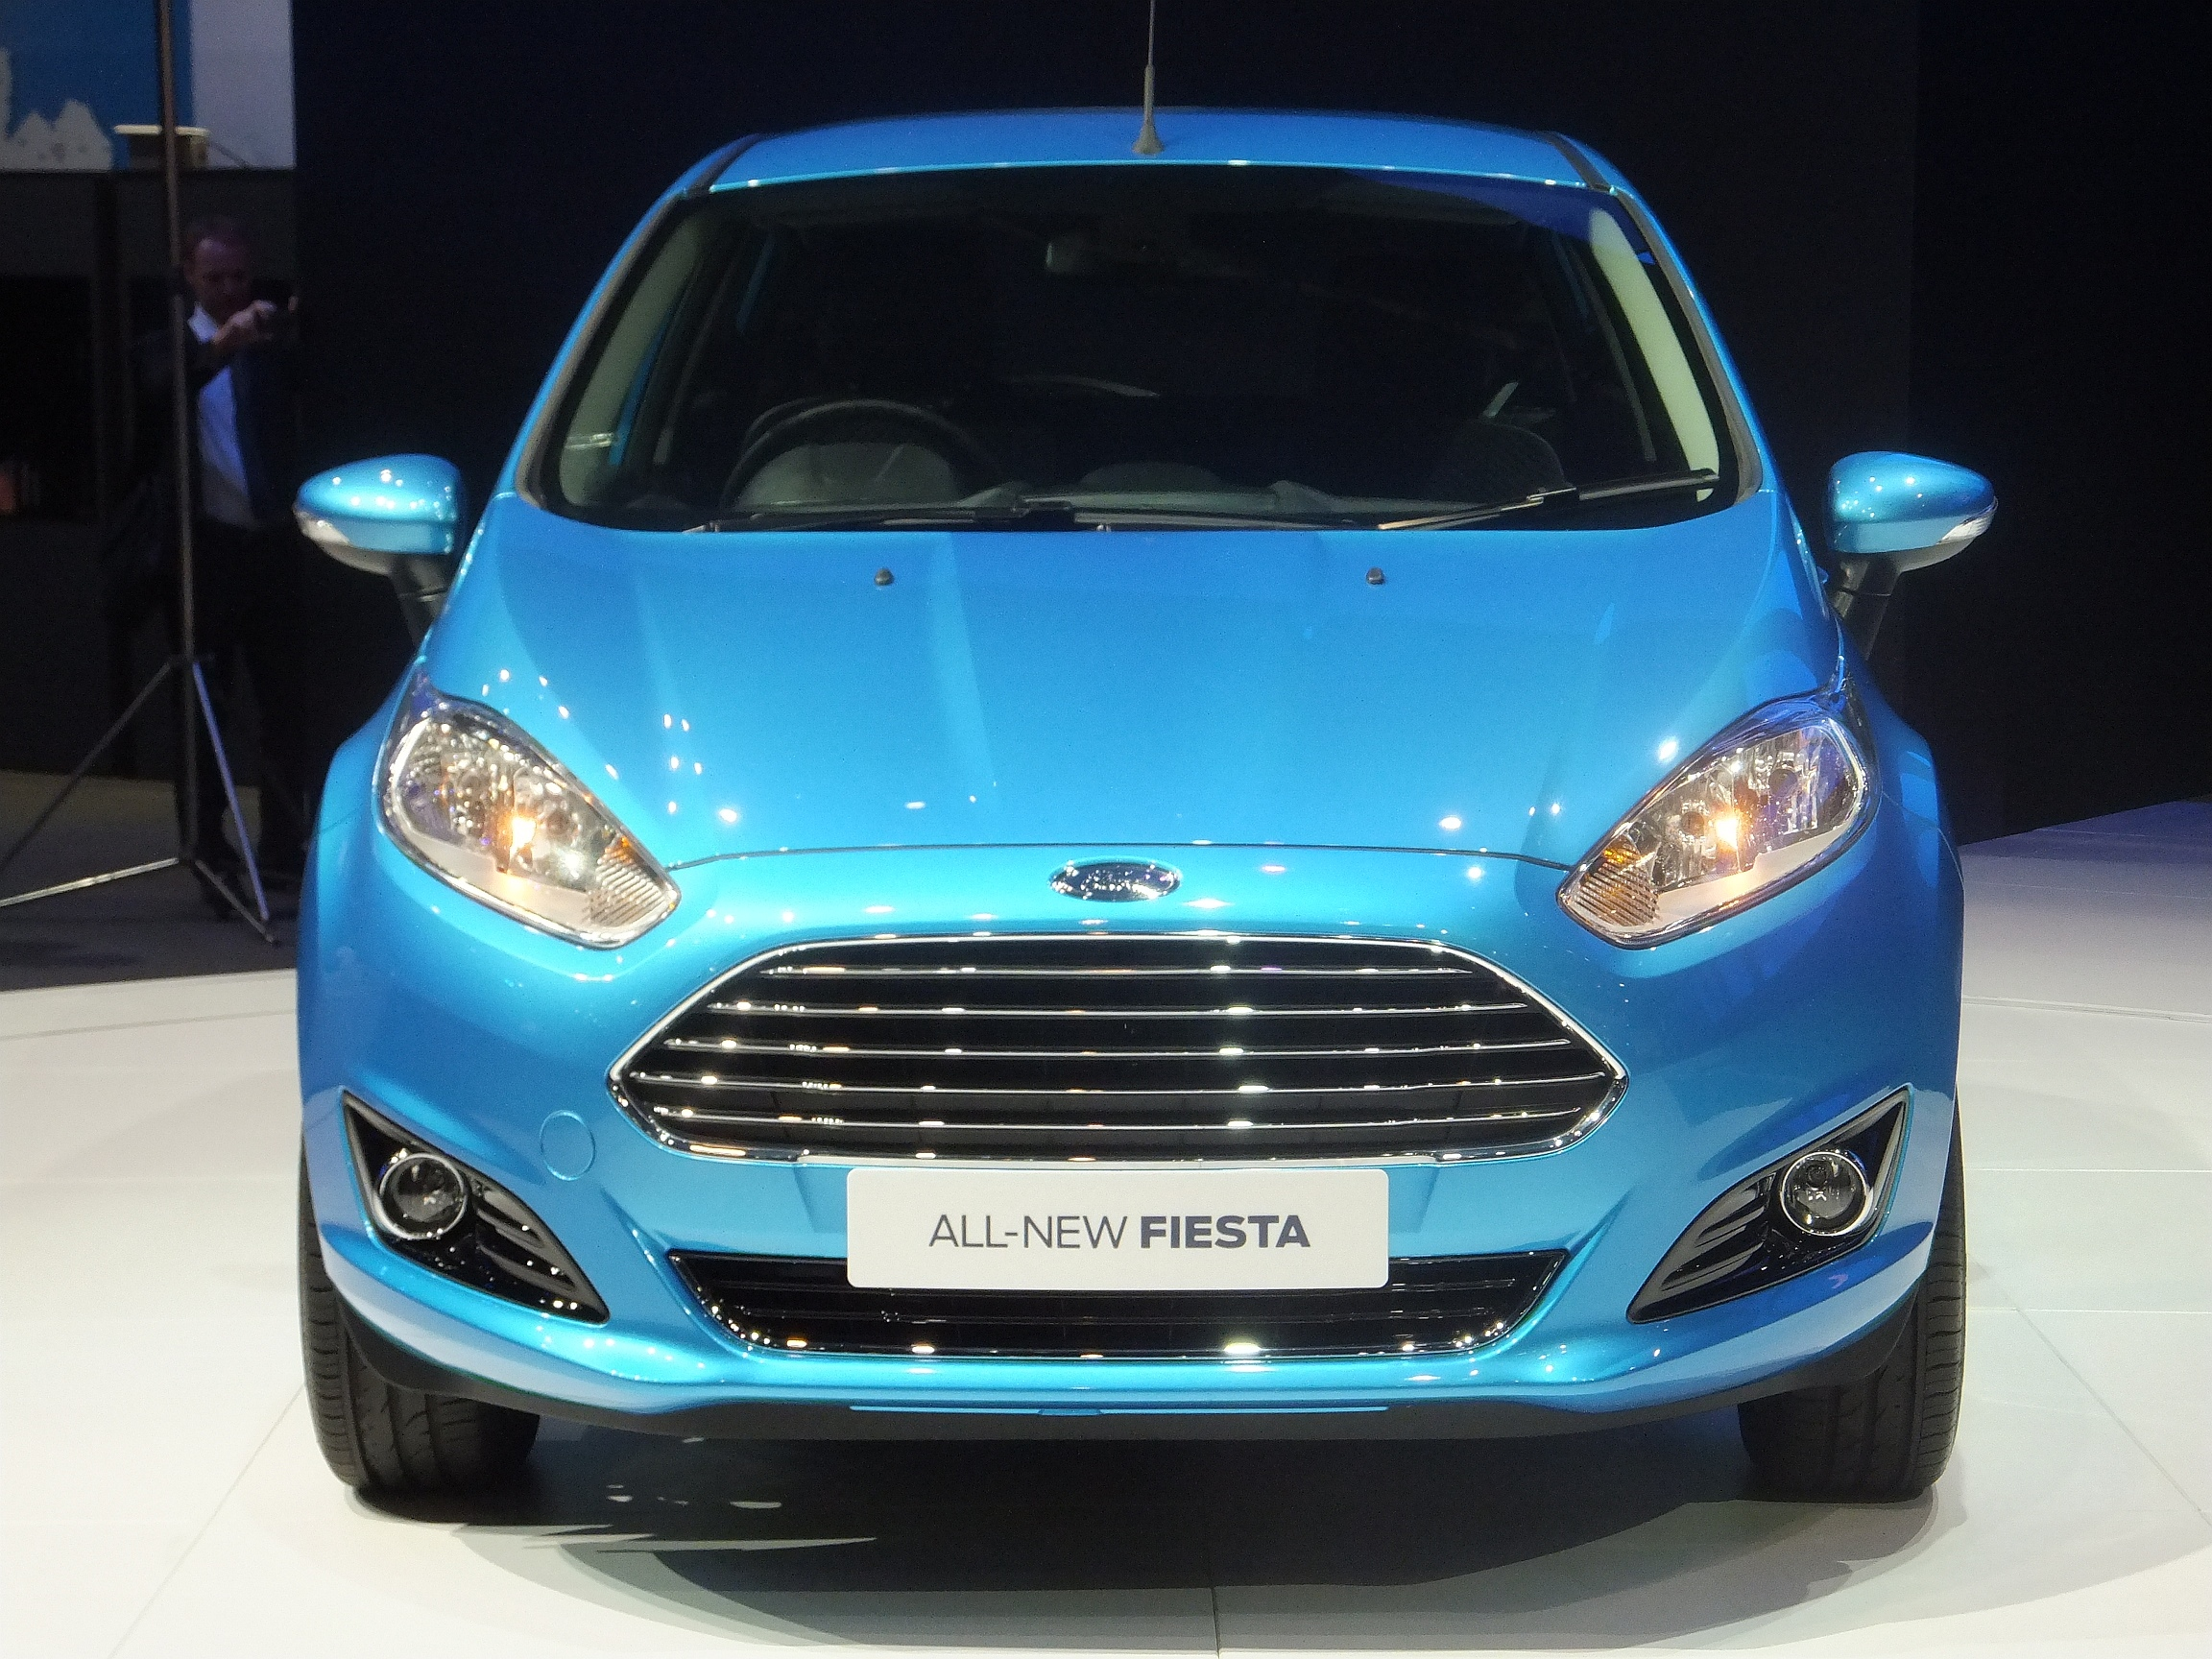 ford fiesta facelift gets asean premiere in bangkok will now feature 1 0 litre ecoboost turbo. Black Bedroom Furniture Sets. Home Design Ideas